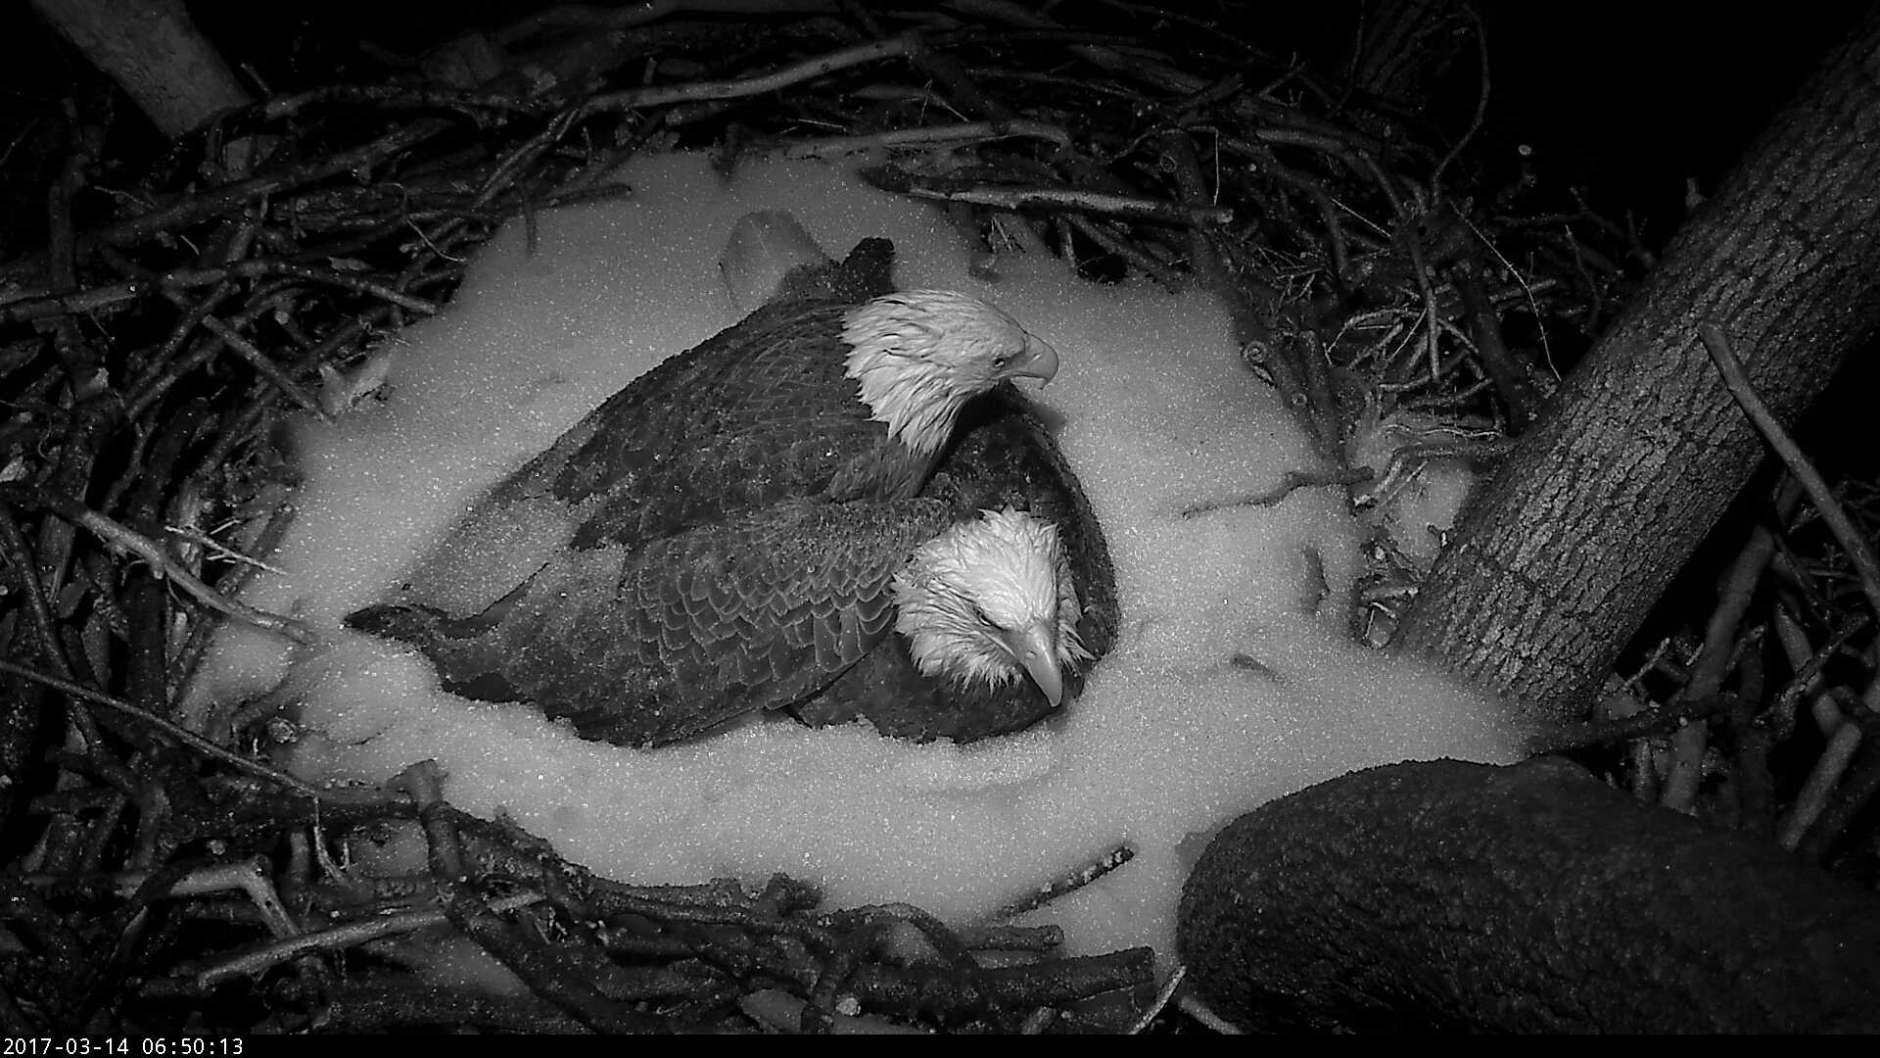 As snow fell during the night, Mr. President joined The First Lady to add an extra layer of warmth inside their nest at the National Arboretum. (© 2017 American Eagle Foundation, DCEAGLECAM.ORG)